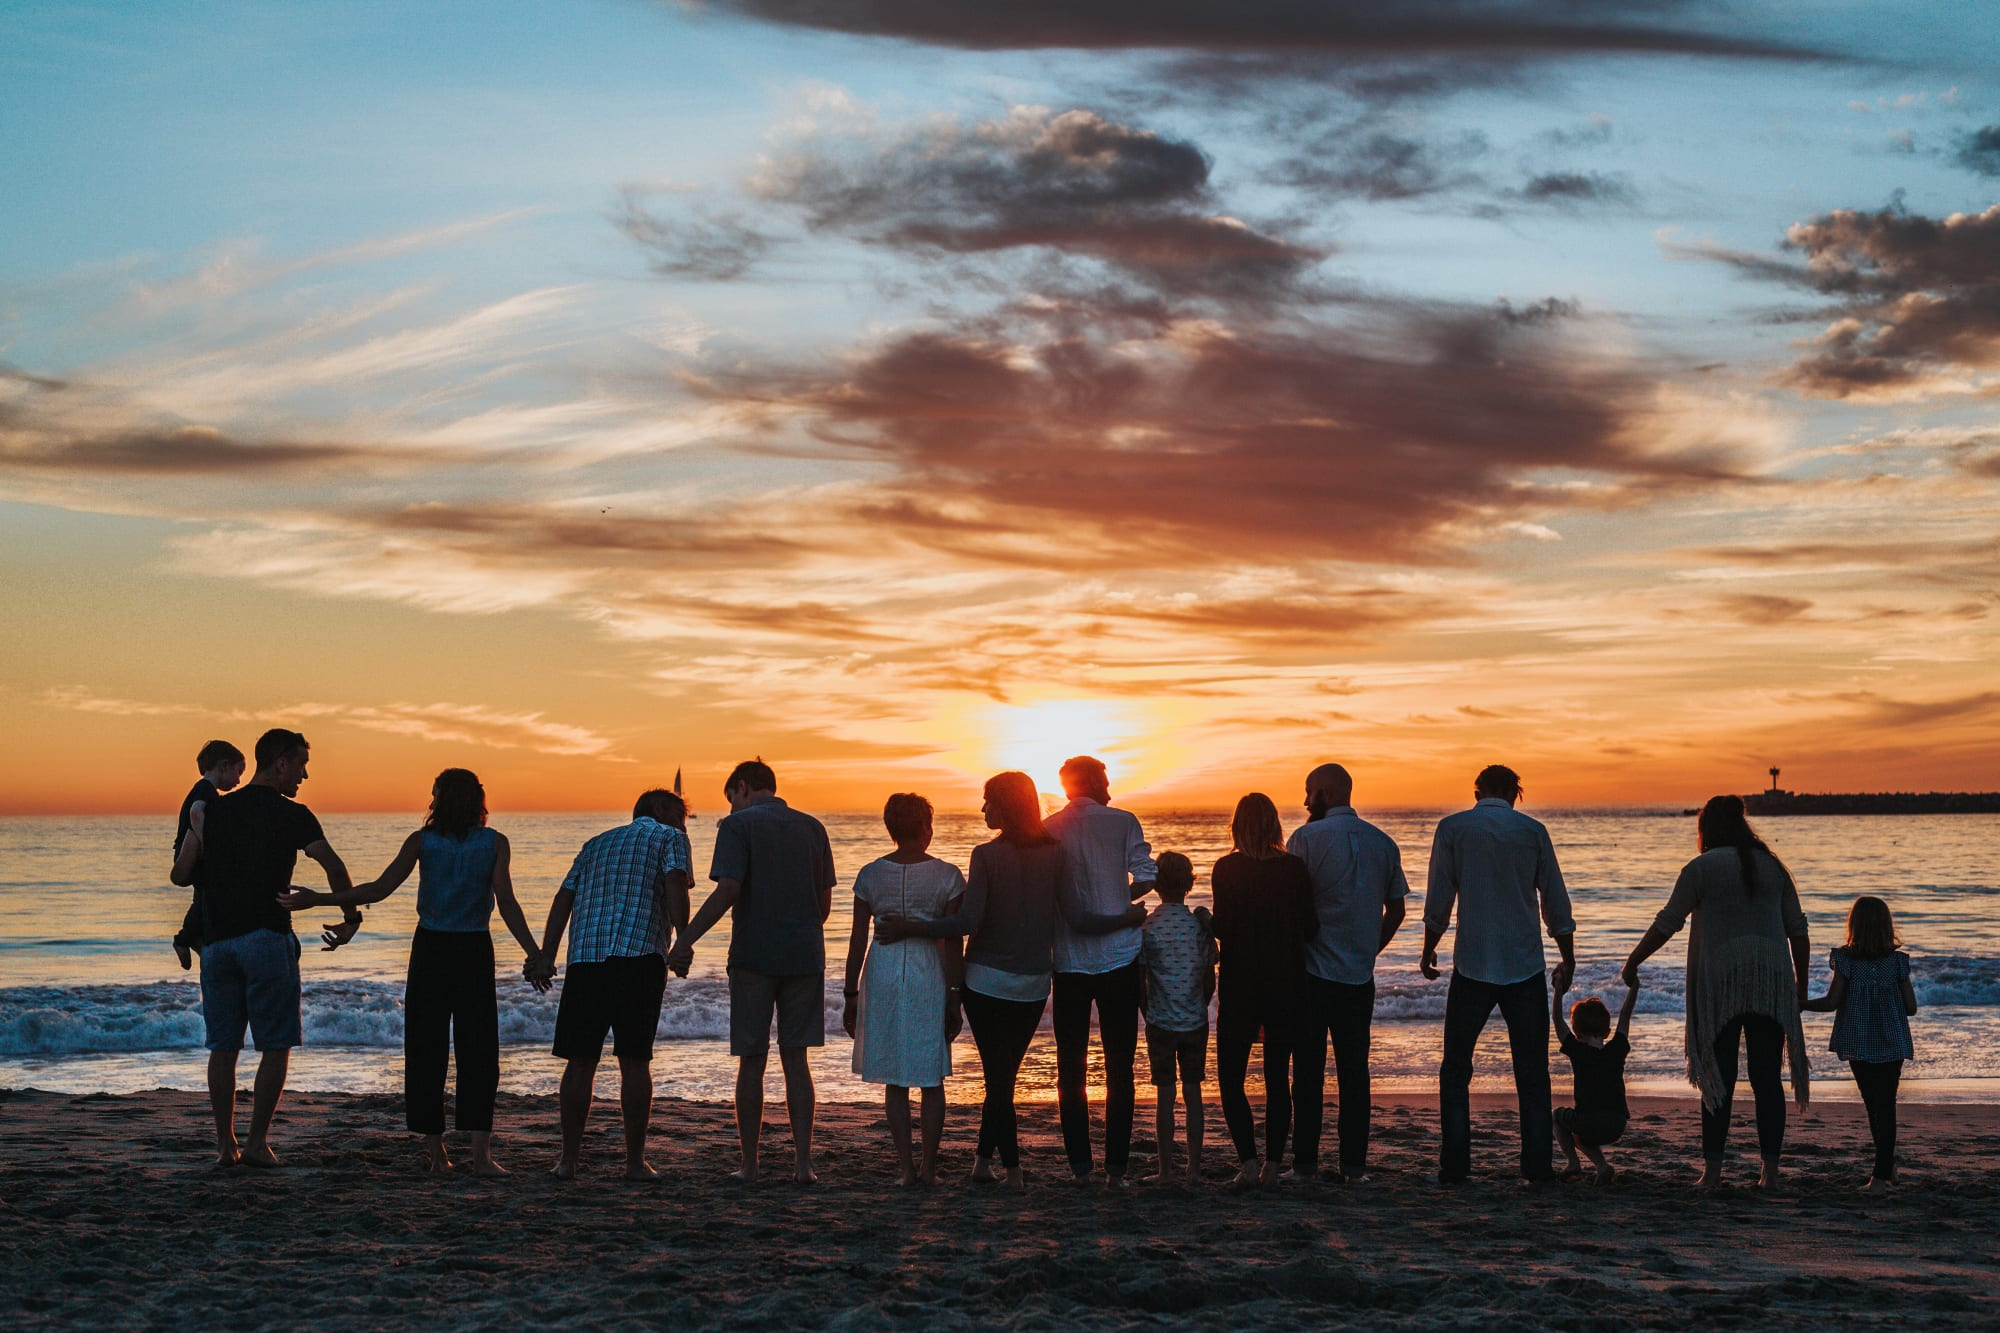 Family Vacations is the top Filipino motivation to travel - Airbnb